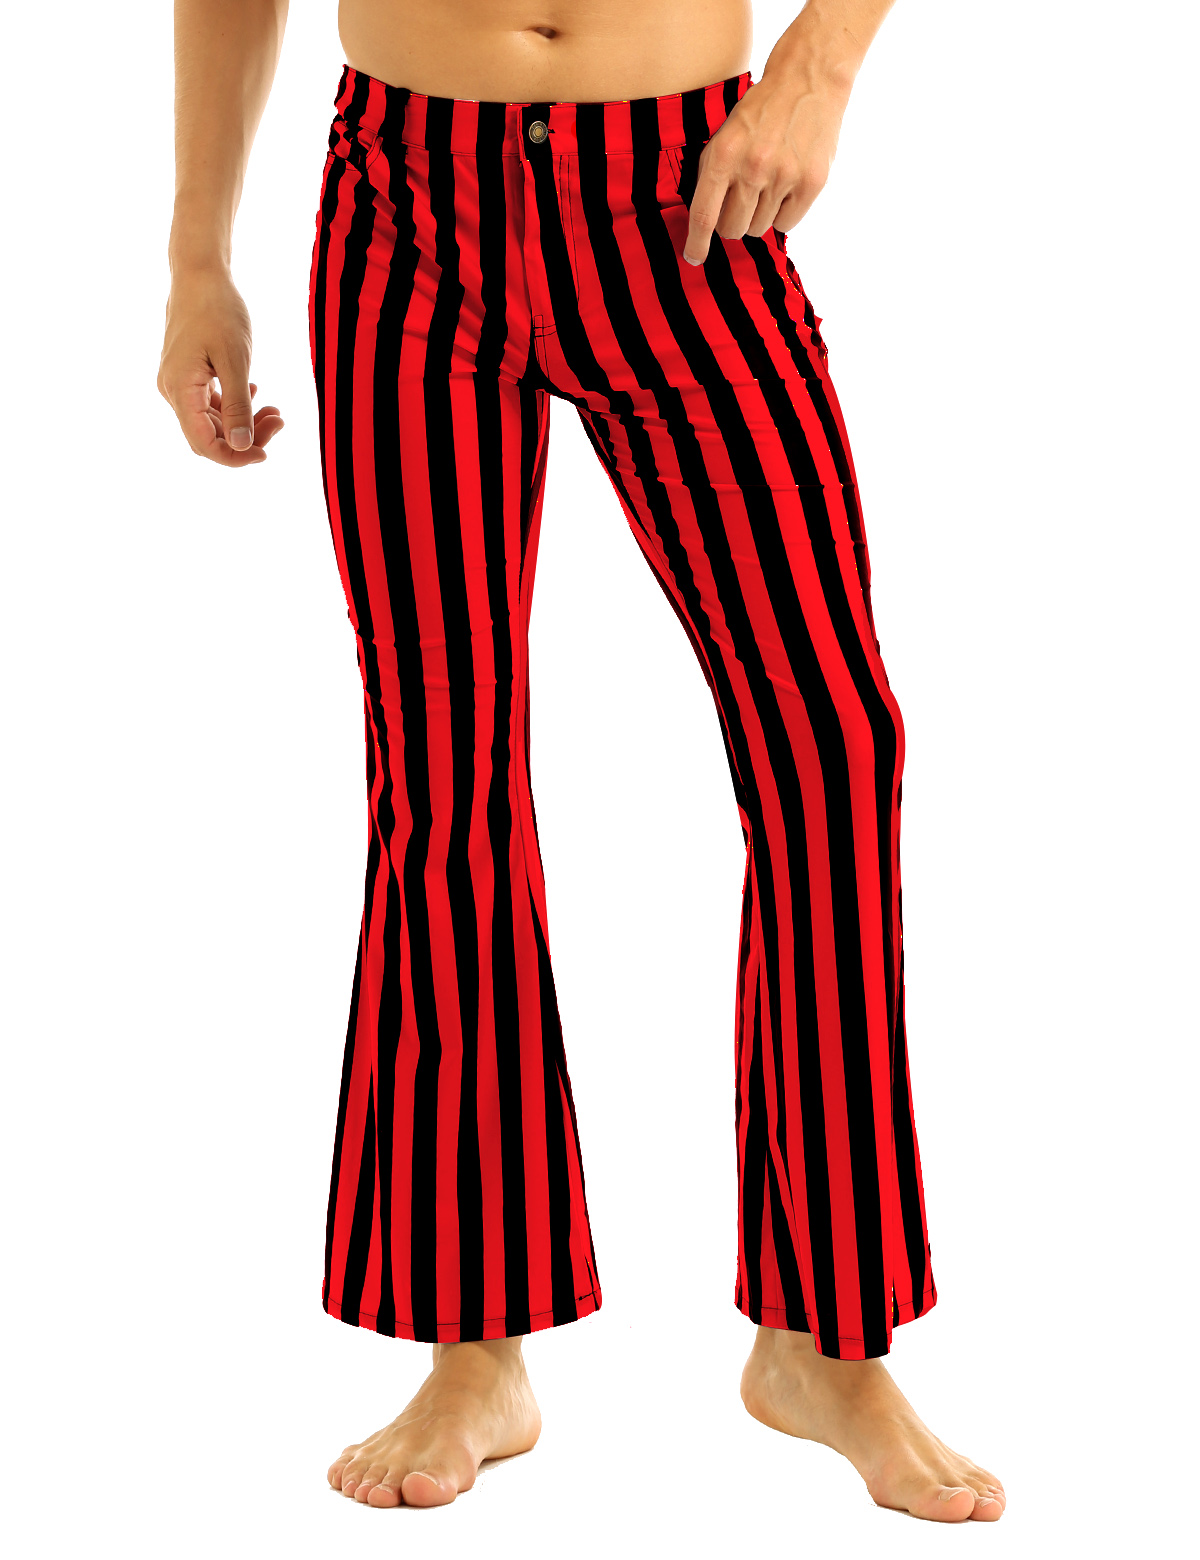 Halloween Party Costume for Men Vintage Stripe Pant Male Long Pant Stretch Bell Bottom Trousers Western Streetwear Clothes Homme 15